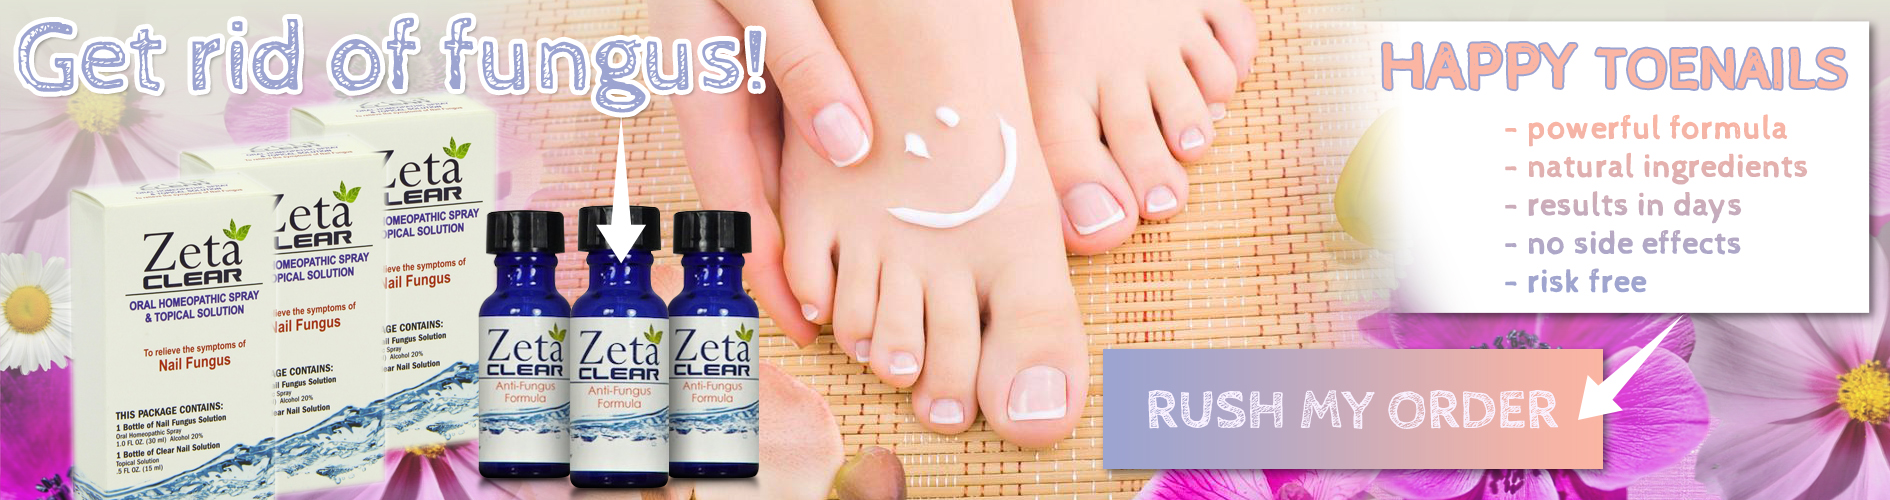 How to get stronger, healthier toenails in just a week